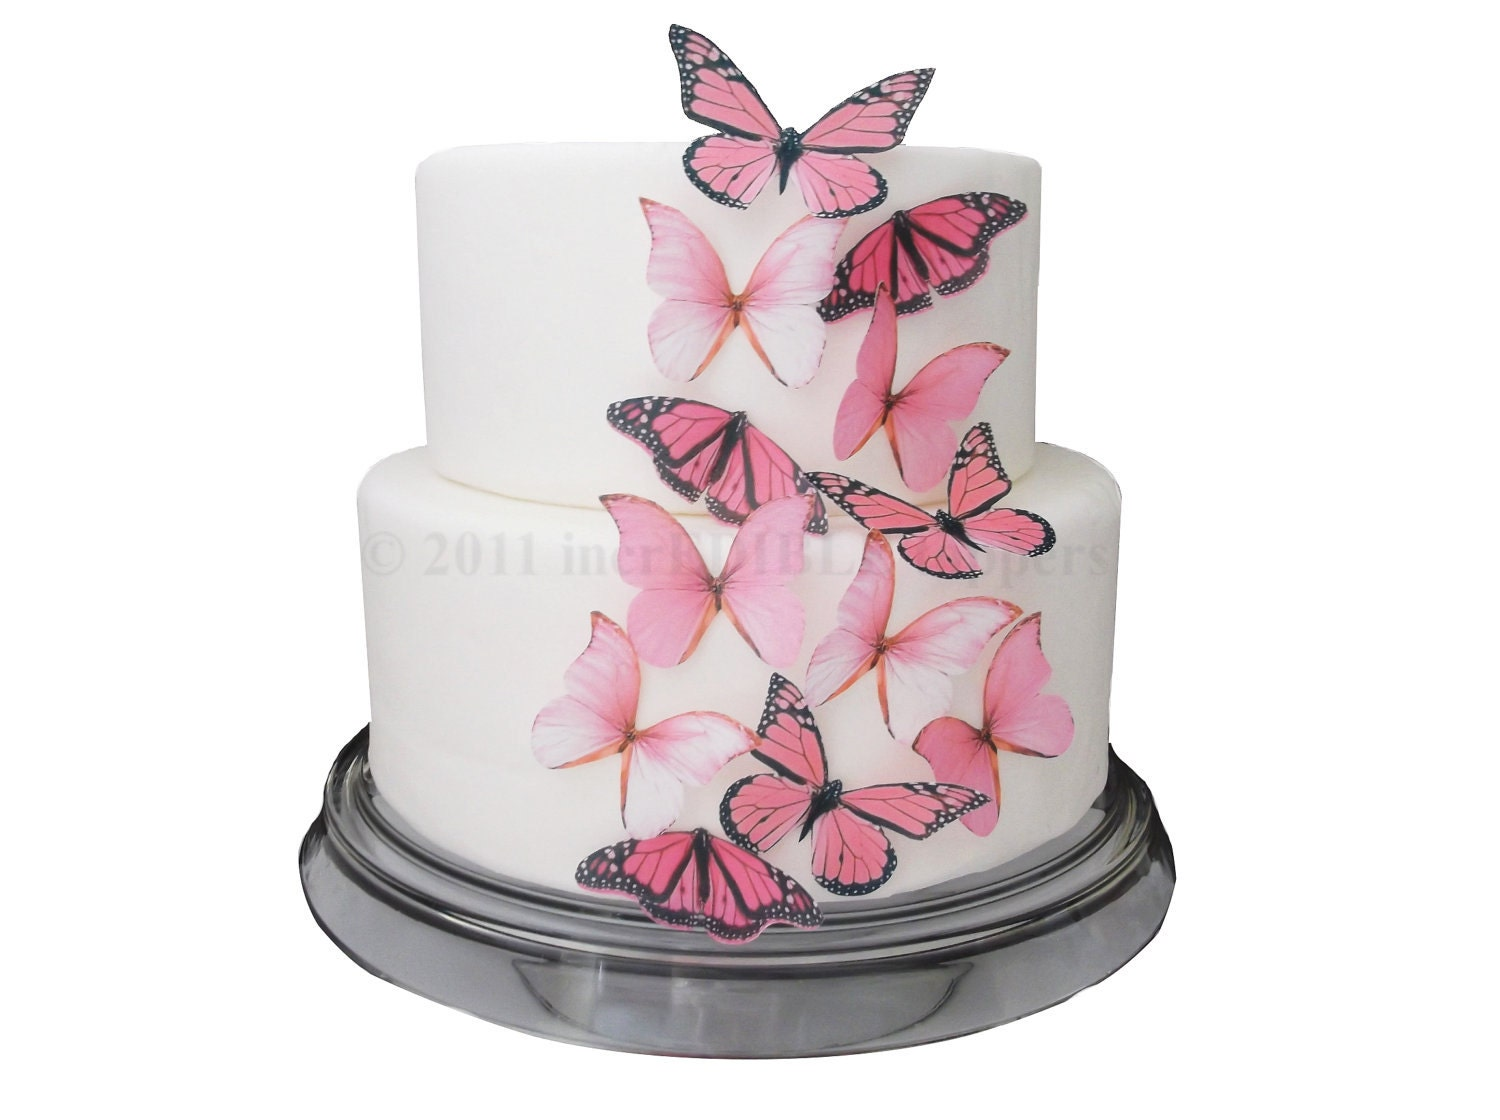 Cake Decorations Edible Photos : CAKE DECORATIONS Edible Butterflies 12 Large by ...